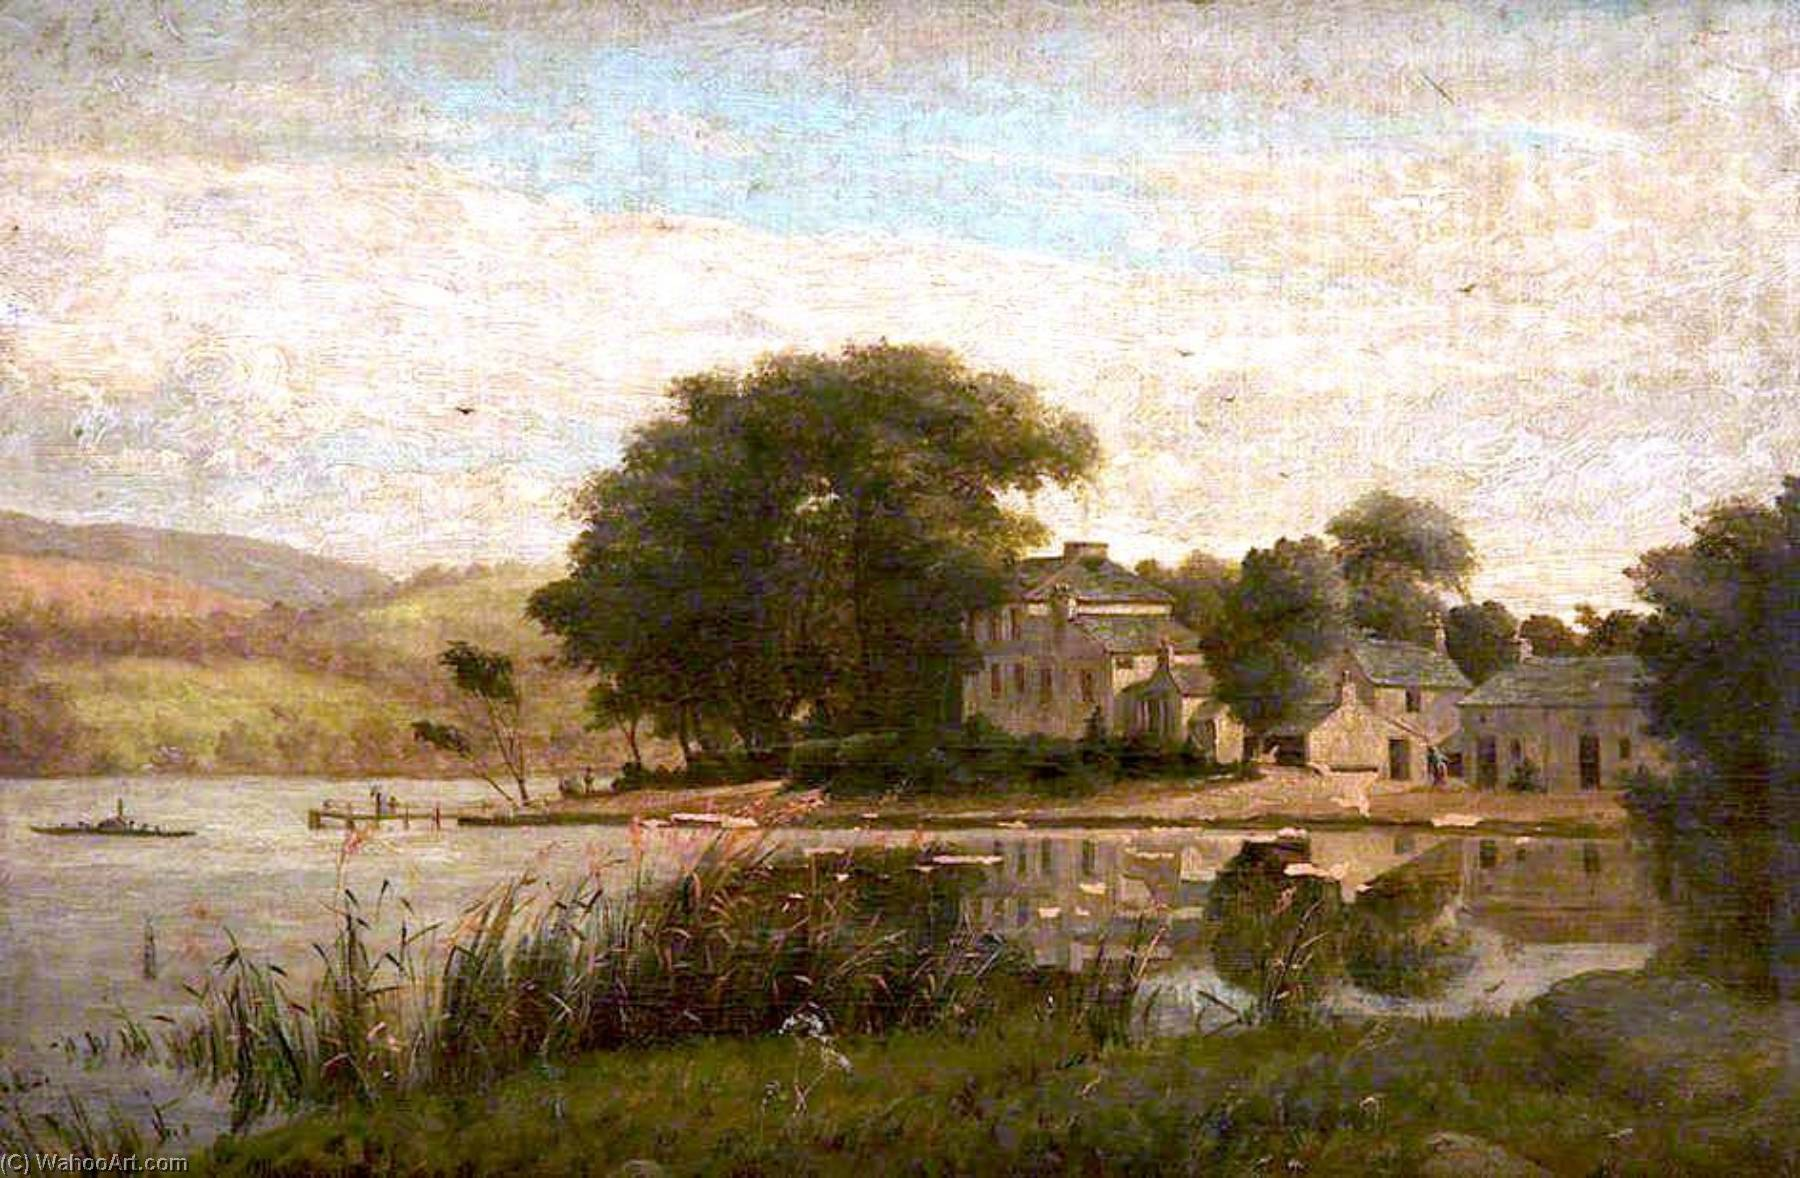 Order Paintings Reproductions | Landscape with a Lake and Houses by James Hey Davies (1844-1926) | WahooArt.com